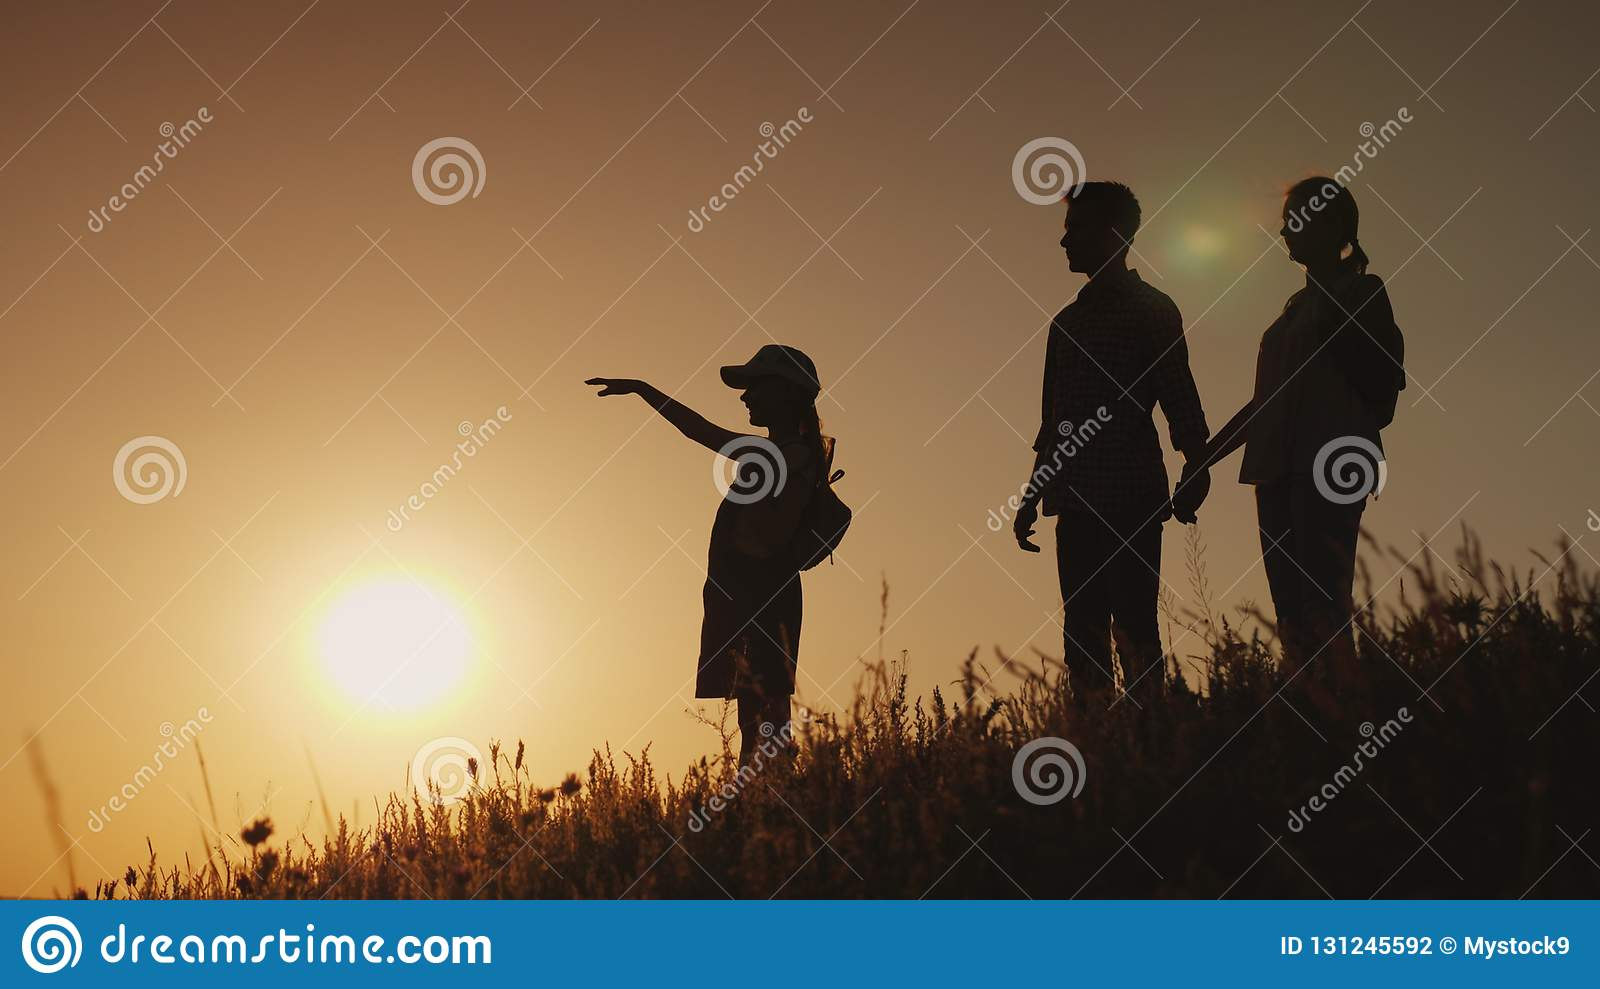 Silhouettes of a happy family, together they meet the dawn in a picturesque place